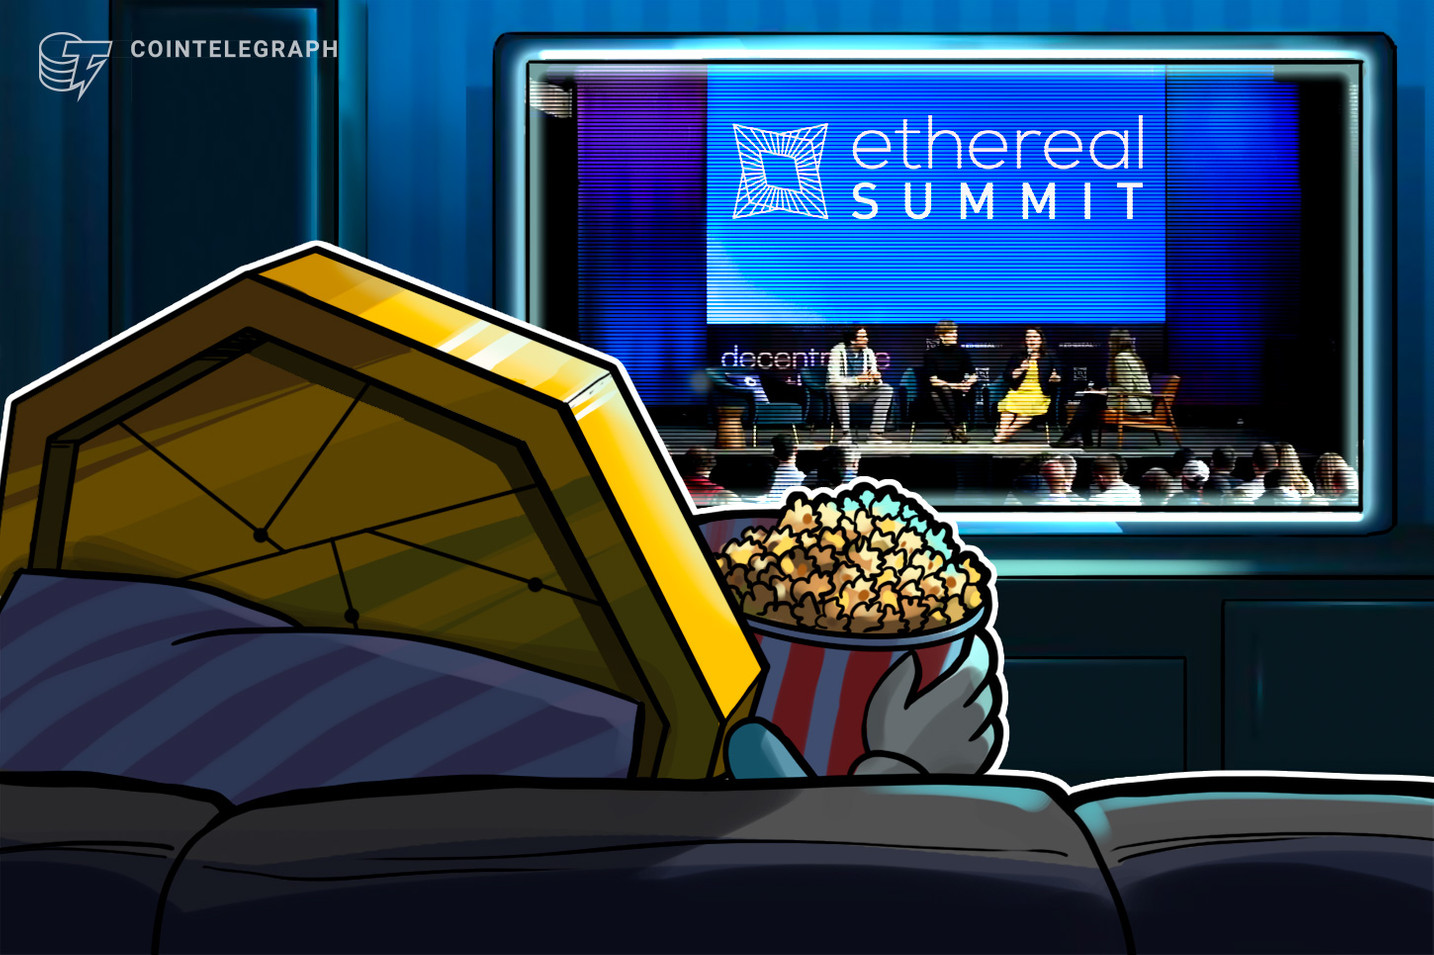 Messari CEO: Ethereum 2.0 Proof-of-Stake Transition Not to Happen Until at Least 2021